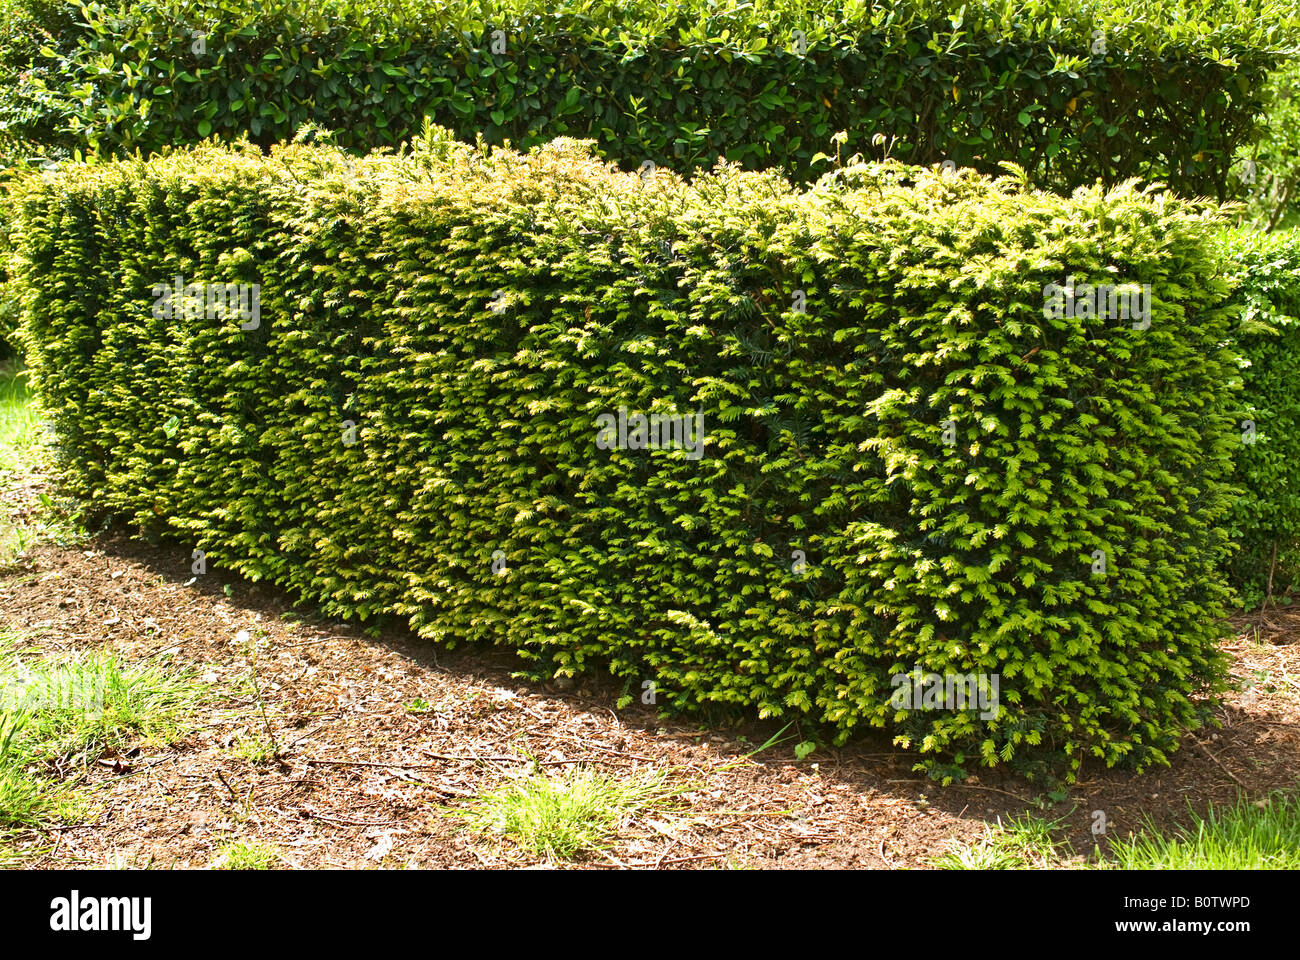 Yew hedge in May - Stock Image